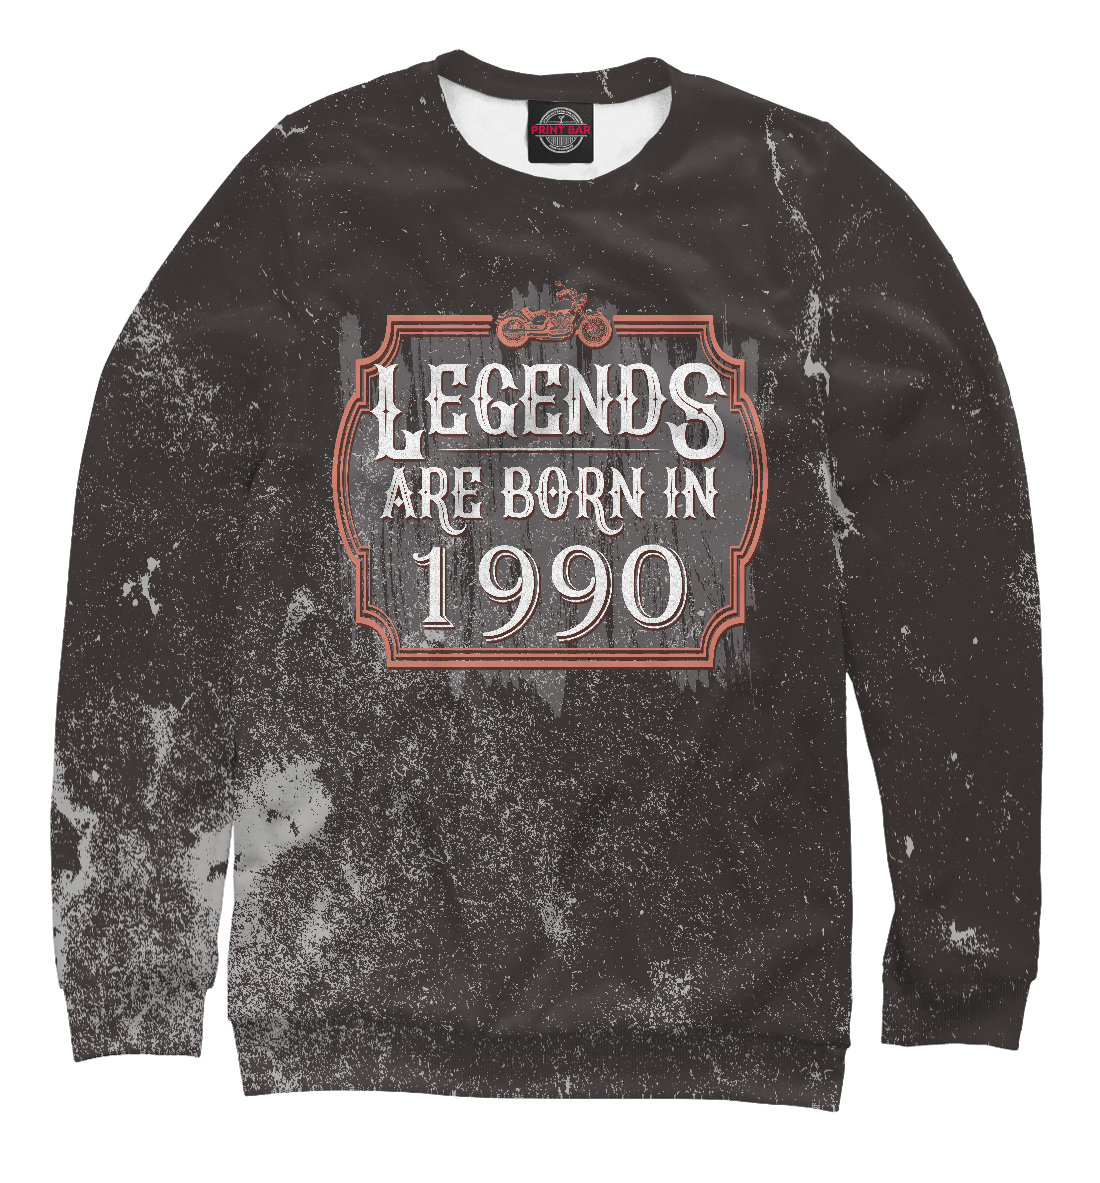 Купить Legends Are Born In 1990, Printbar, Свитшоты, DDO-735971-swi-2